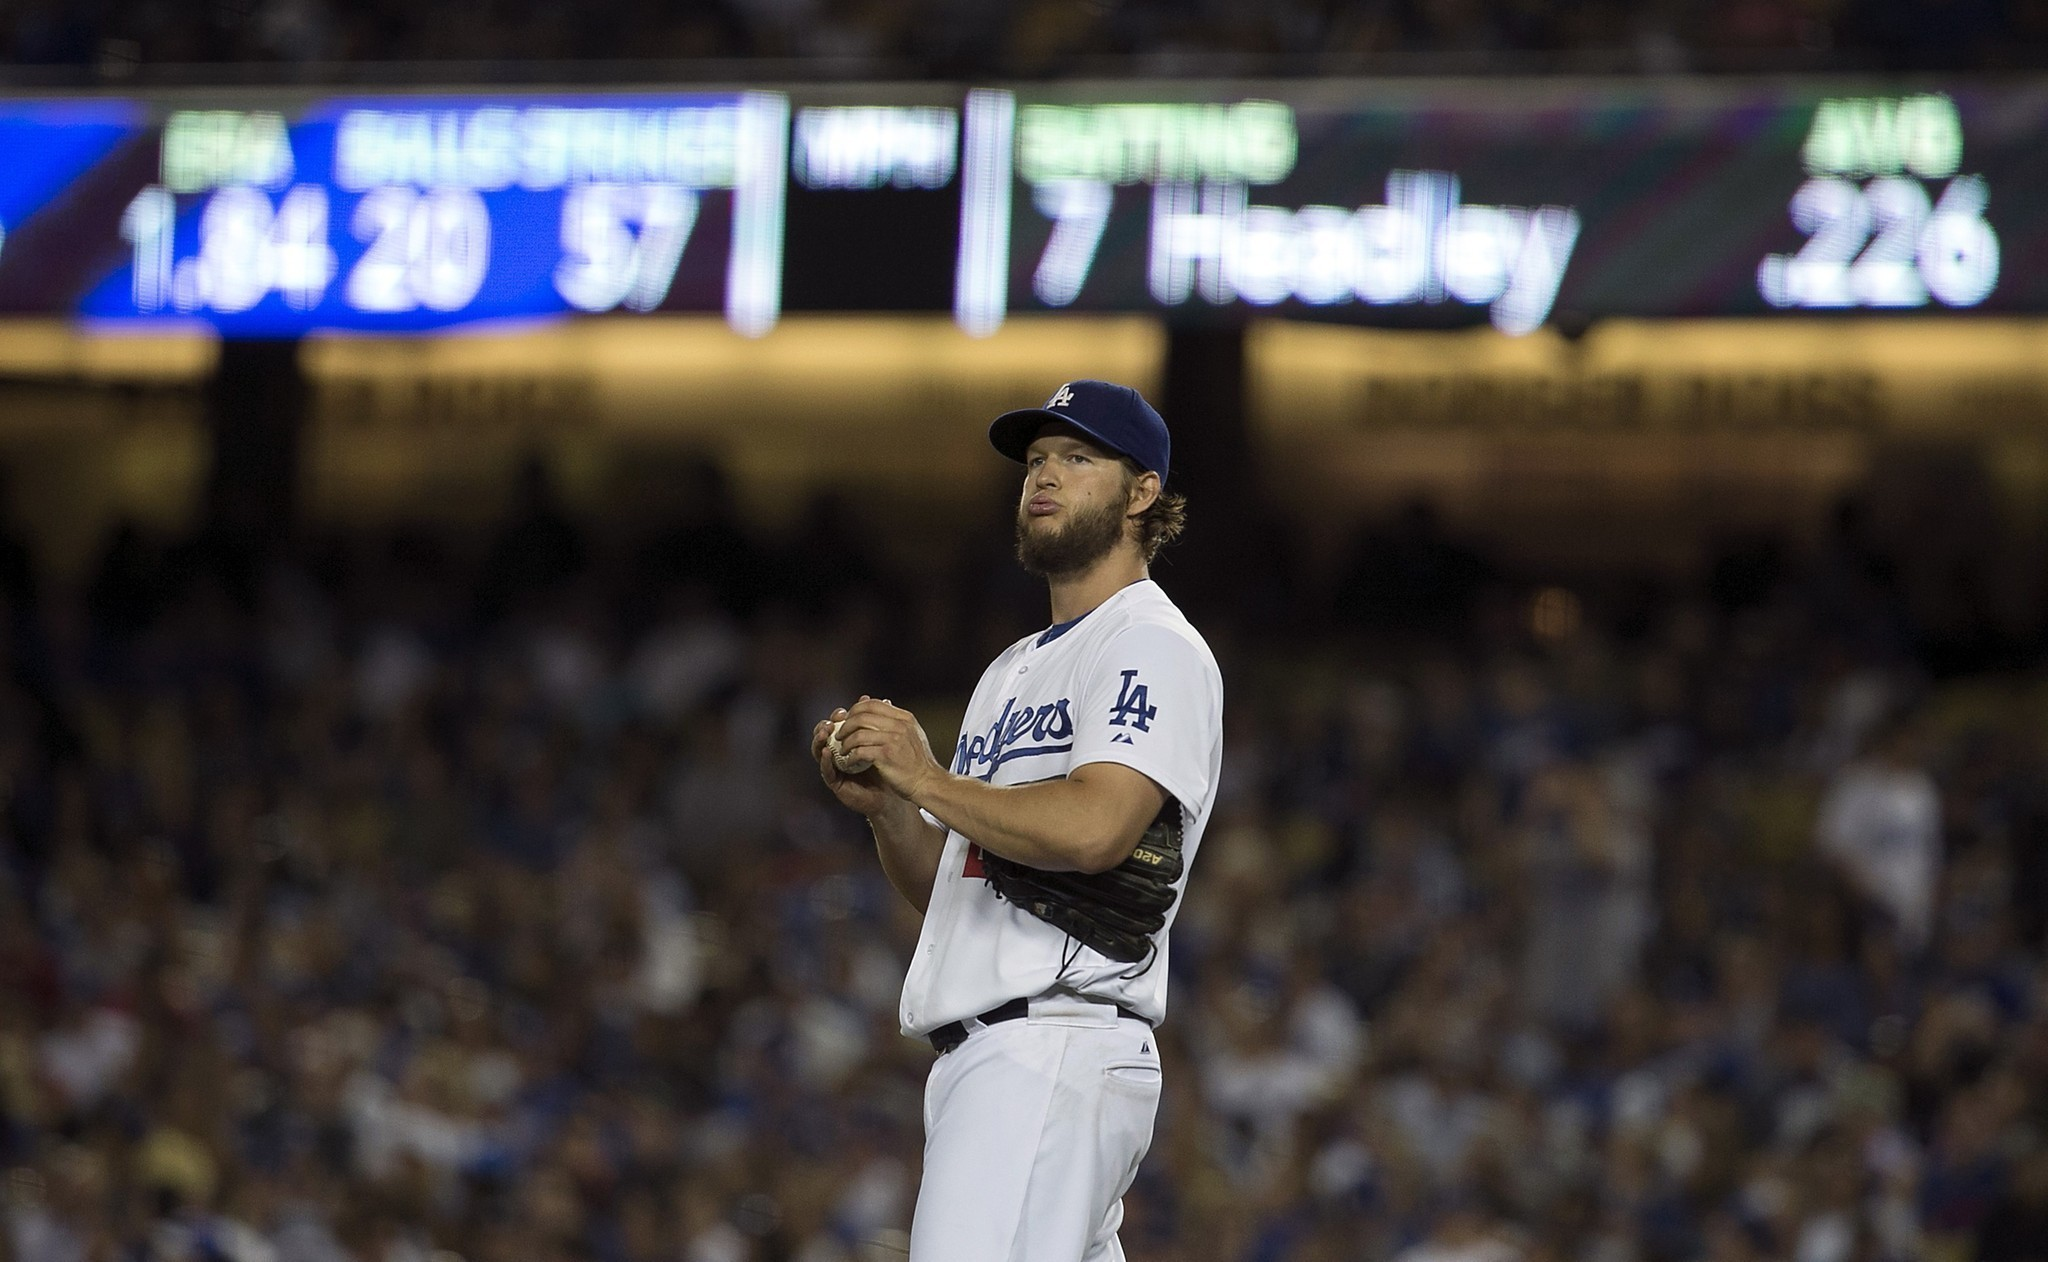 Clayton Kershaw's scoreless streak ends, but his victories continue